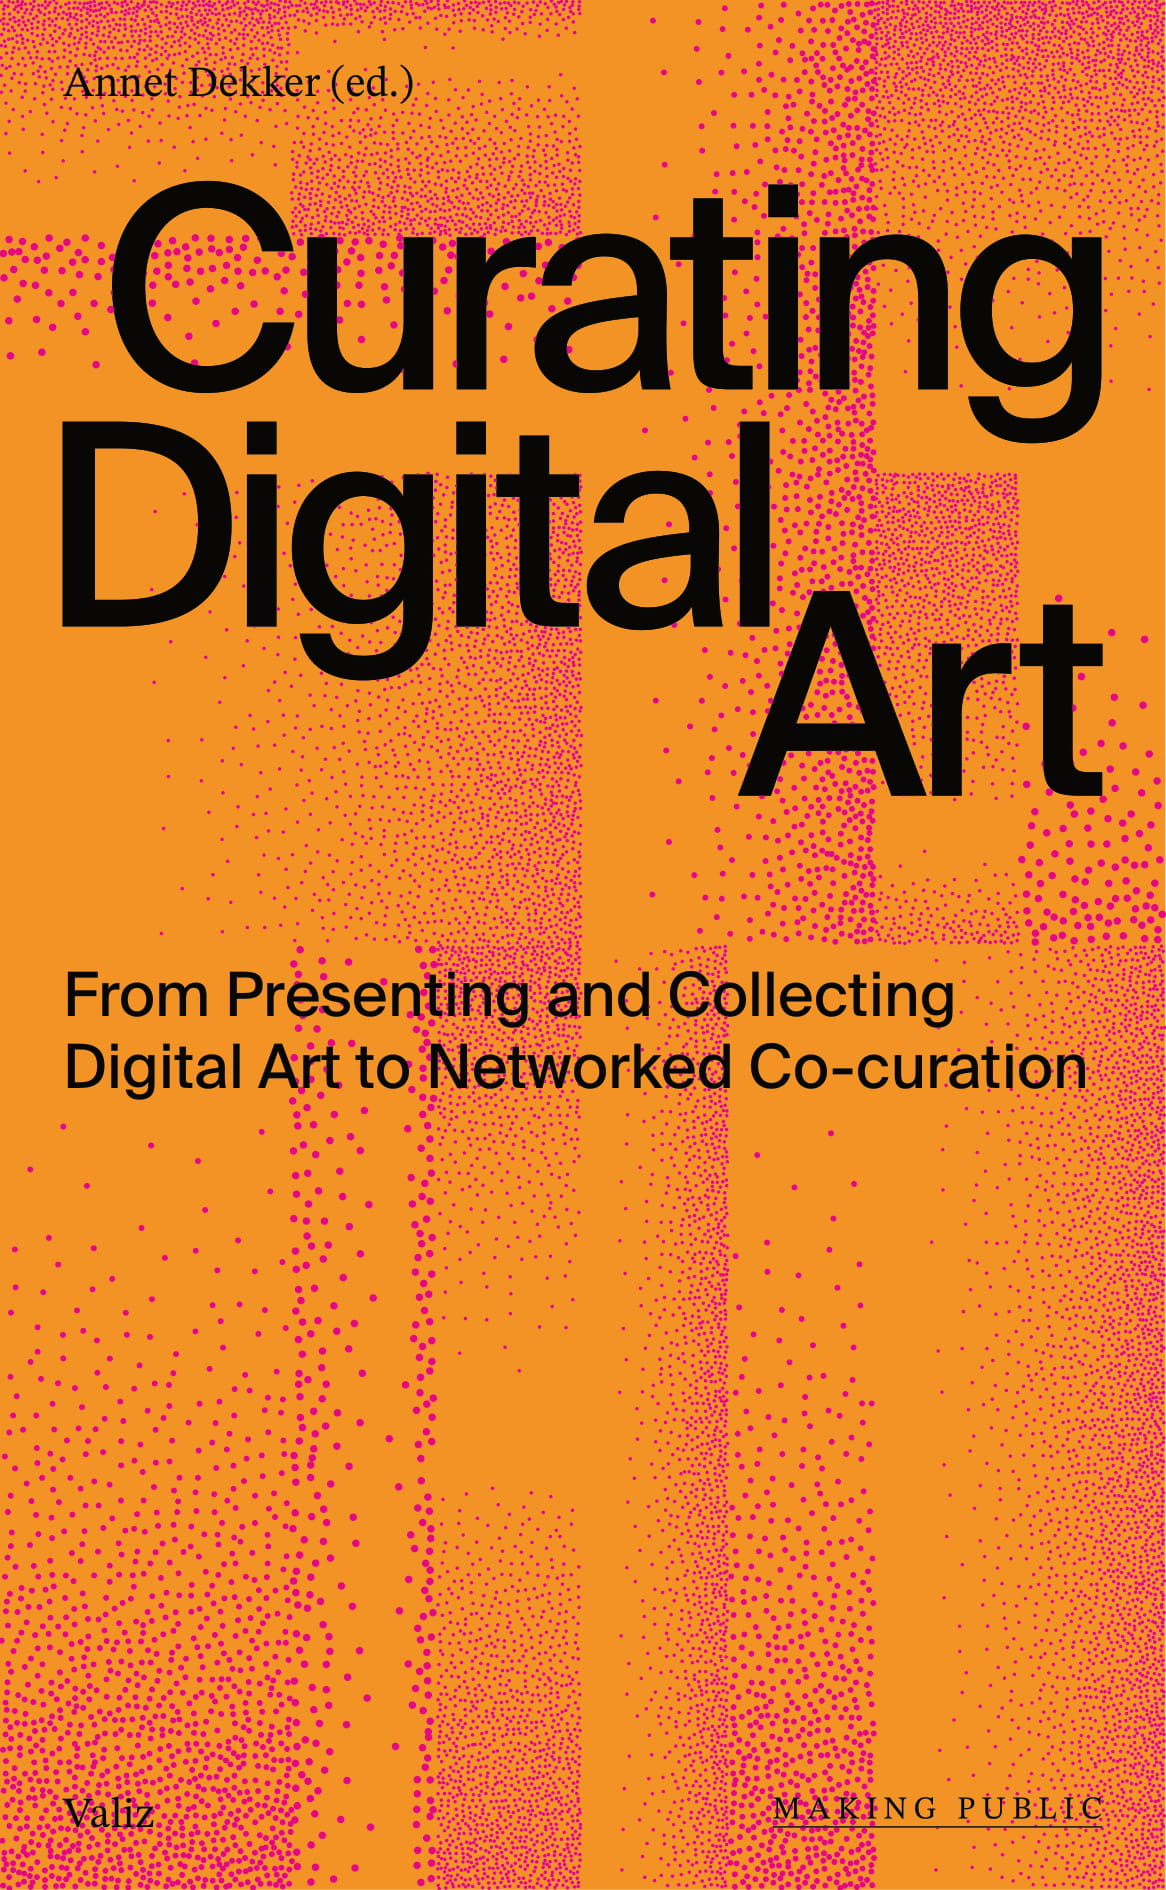 Curating Digital Art